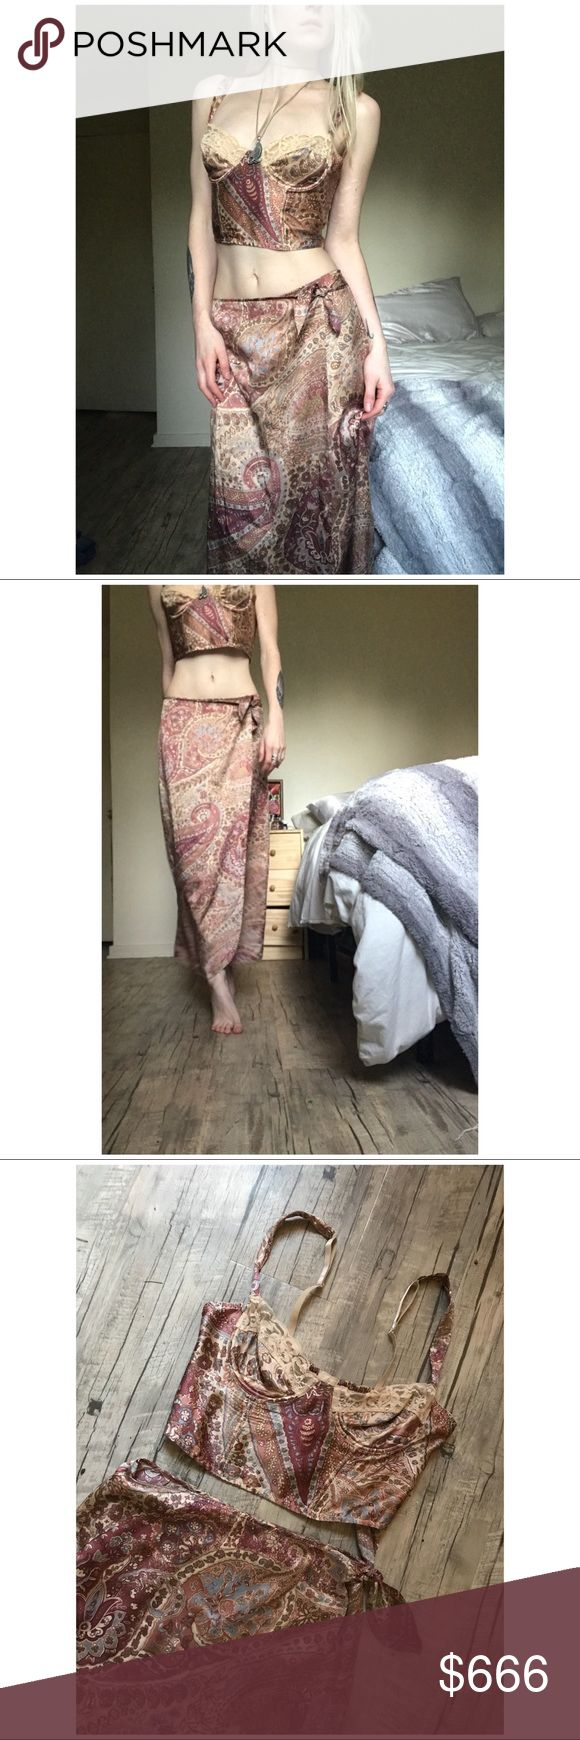 """VTG Boeheim Silk Skirt & Bustier Set /BUY1 GET1 + Excellent condition  + So soft and drapes beautifully (100% real silk) + Tagged as size MEDIUM- fits like size small (please refer to measurements)  + Top has been pinned to model to show ideal fit ( I have a 23"""" waist for reference)  TOP BUST: 30""""-34"""" (ELASTIC(   SKIRT WAIST:28"""" (can be adjusted to fit smaller)   Model is 5'5"""" and is a size XS+   PRICE IS FIRM  buy one get one FREE! Just add your likes to a bundle and I will offer…"""